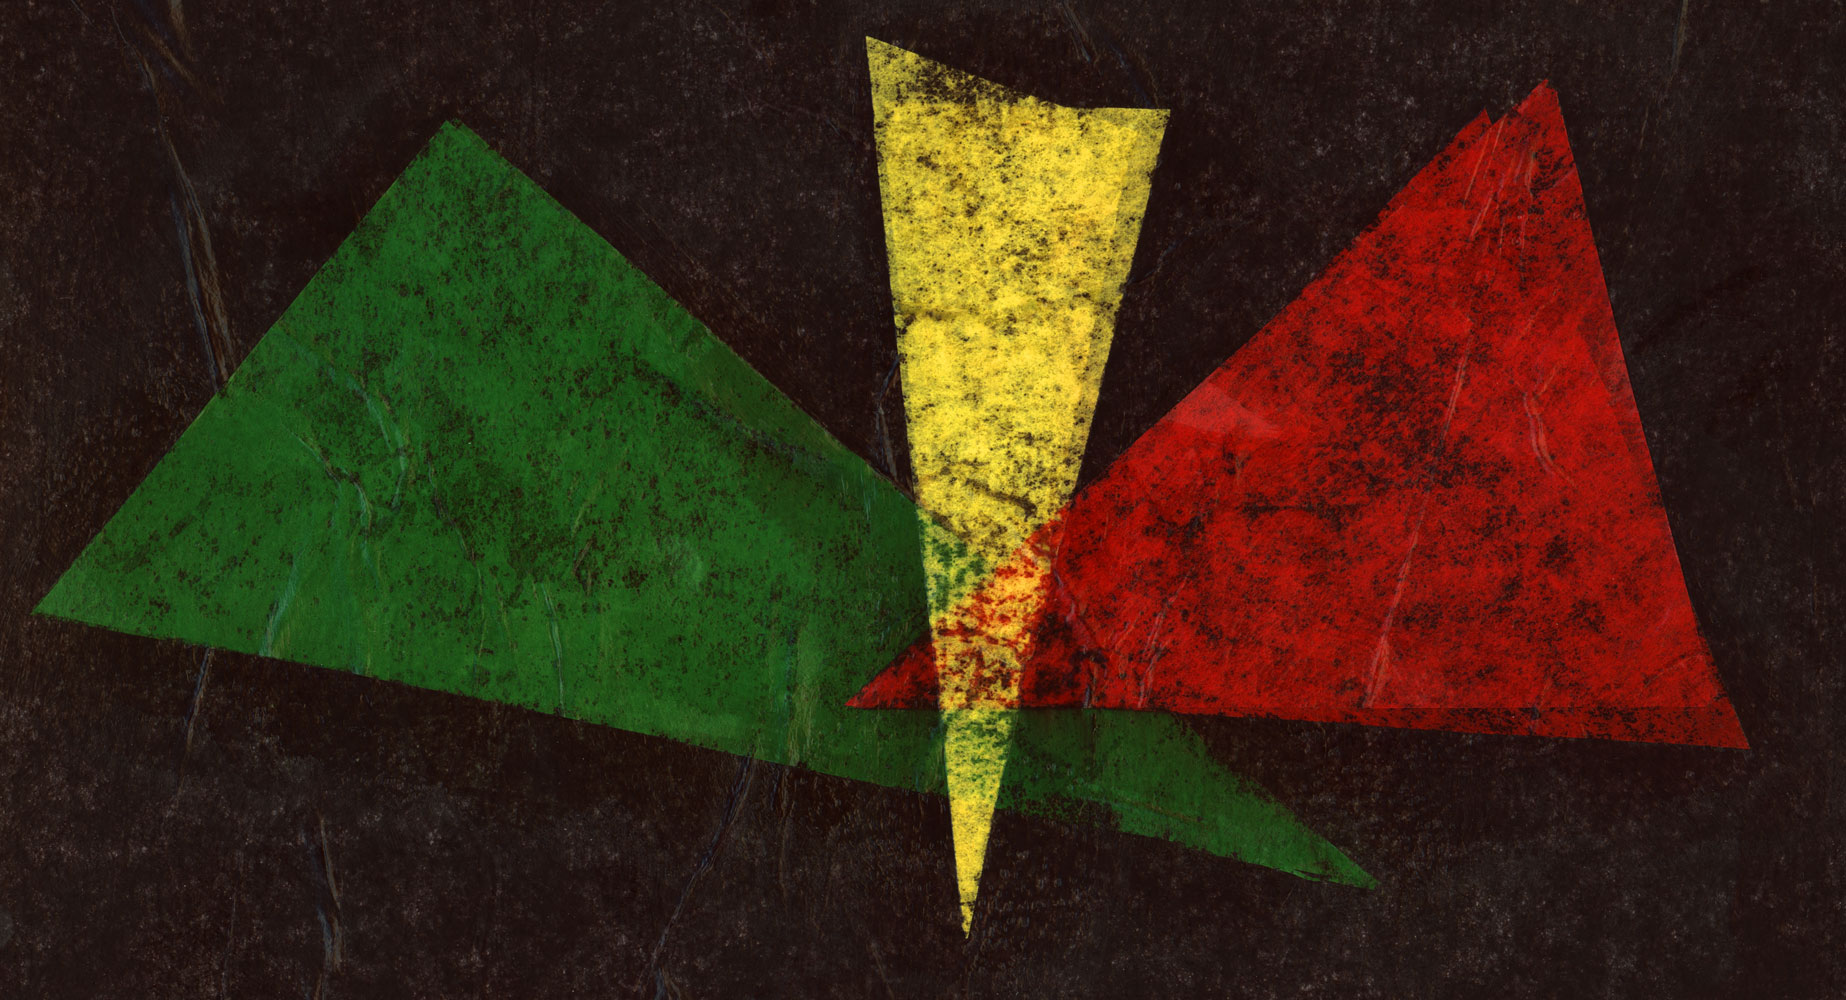 An abstract image of green, yellow, and red triangles overlapping on a black background. Illustration by Ryan Edmund Thiel.